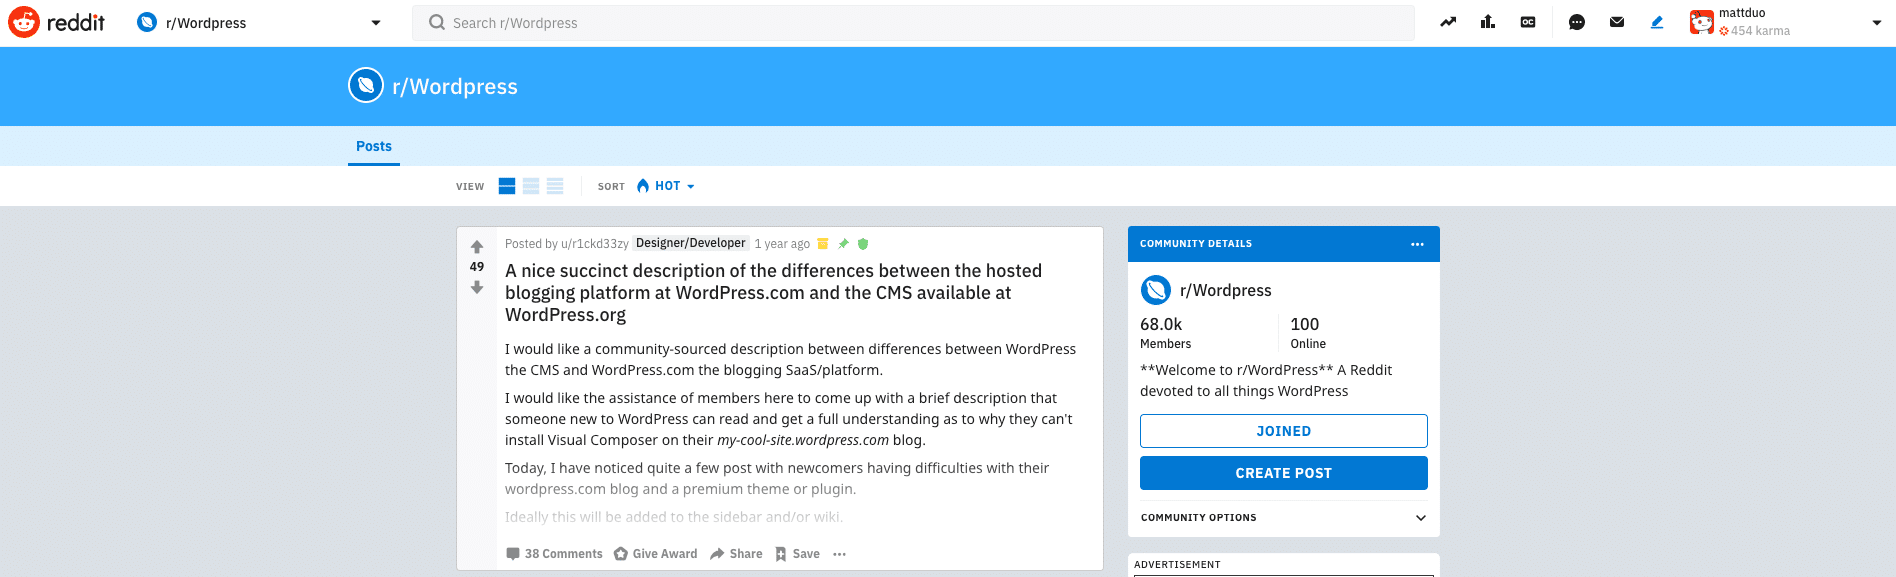 WordPress auf Reddit